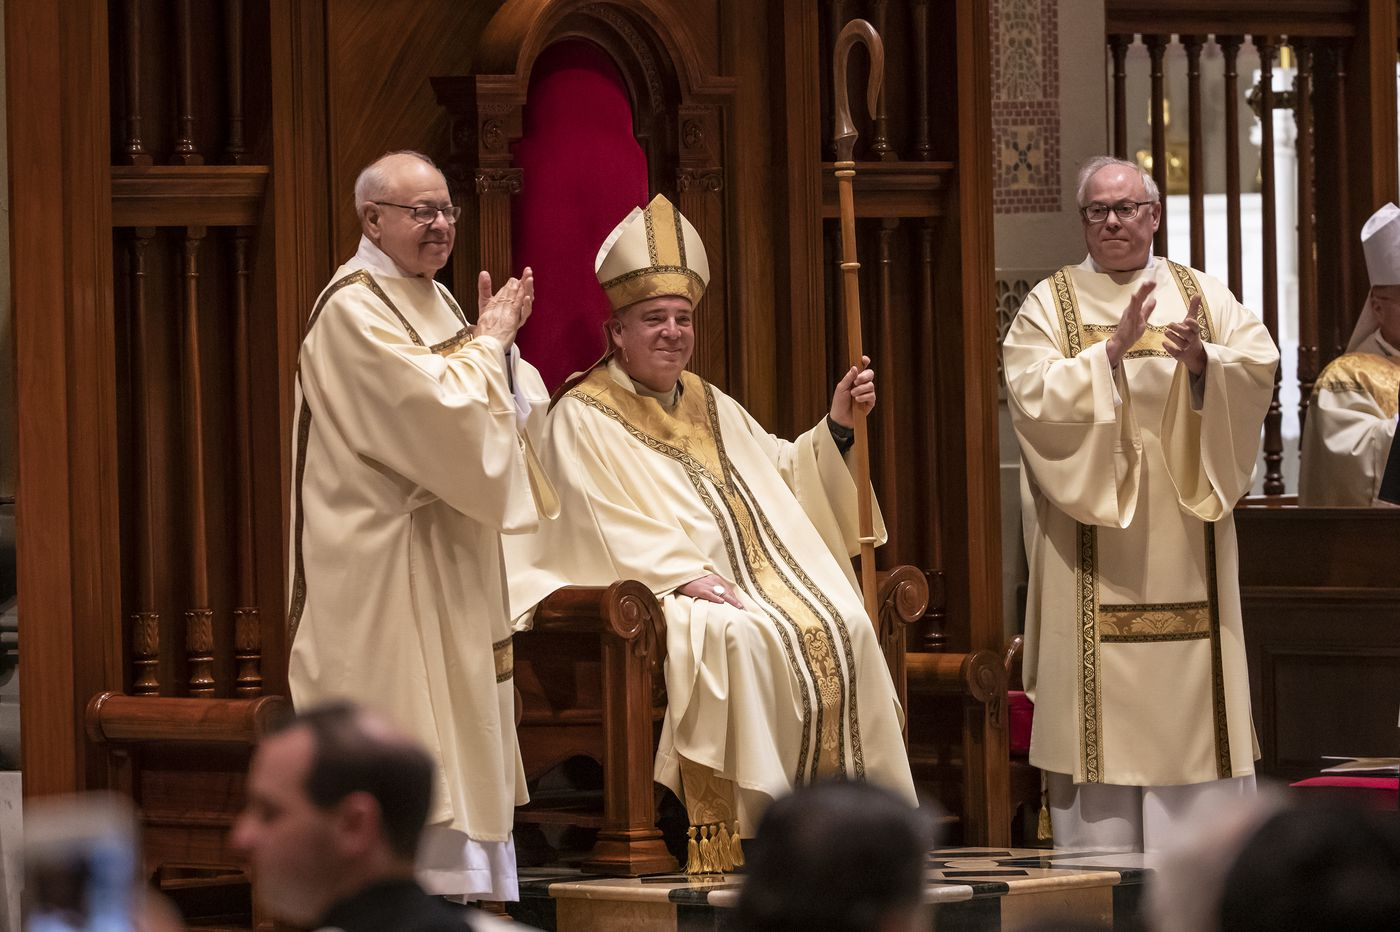 Archbishop Nelson Pérez's installation: New Roman Catholic leader tells flock, 'It's time to come back to the church'